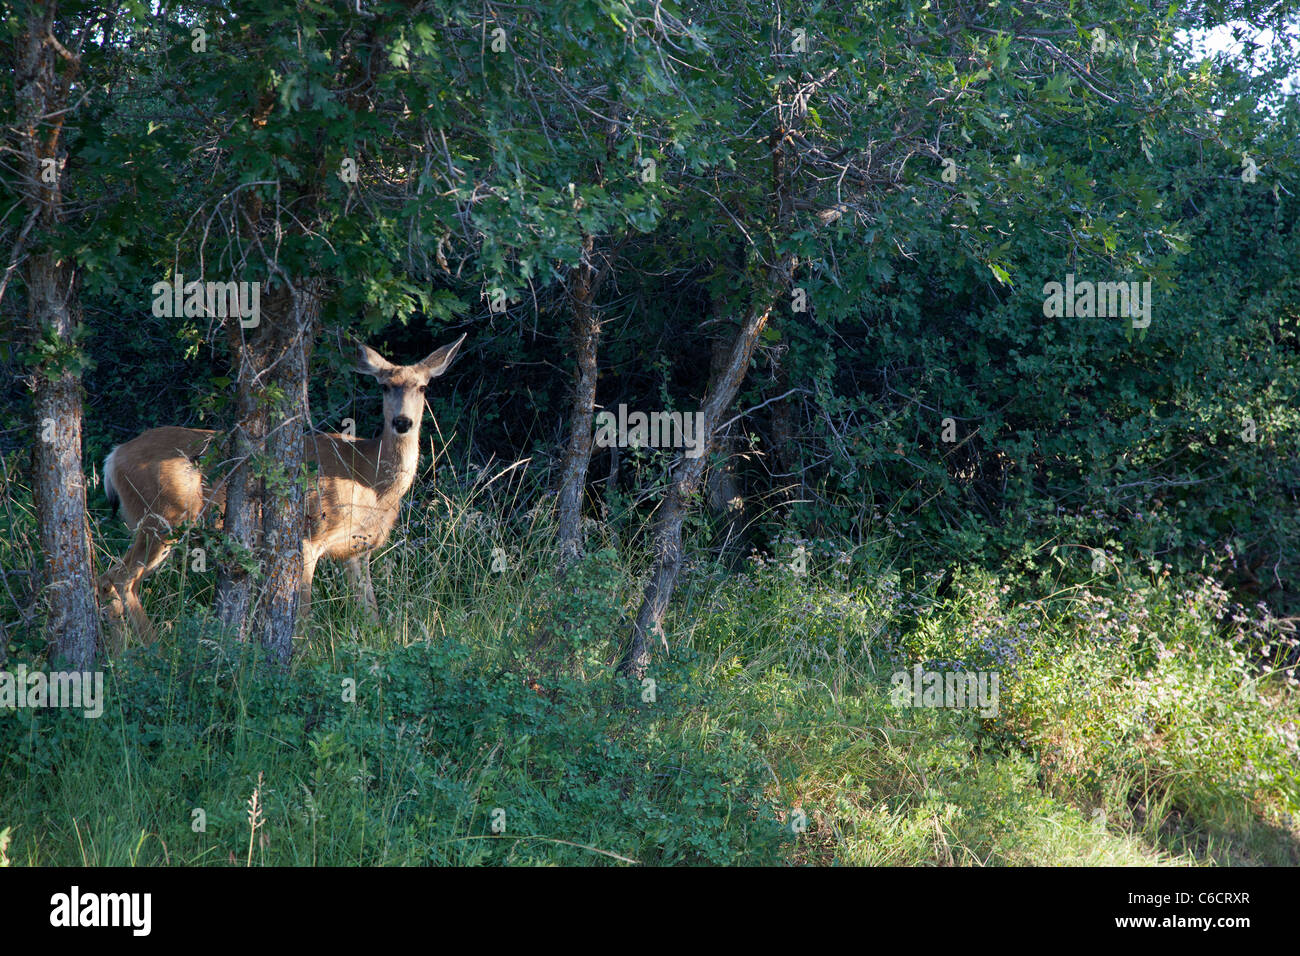 Montrose, Colorado - Mule deer at Black Canyon of the Gunnison National Park. - Stock Image